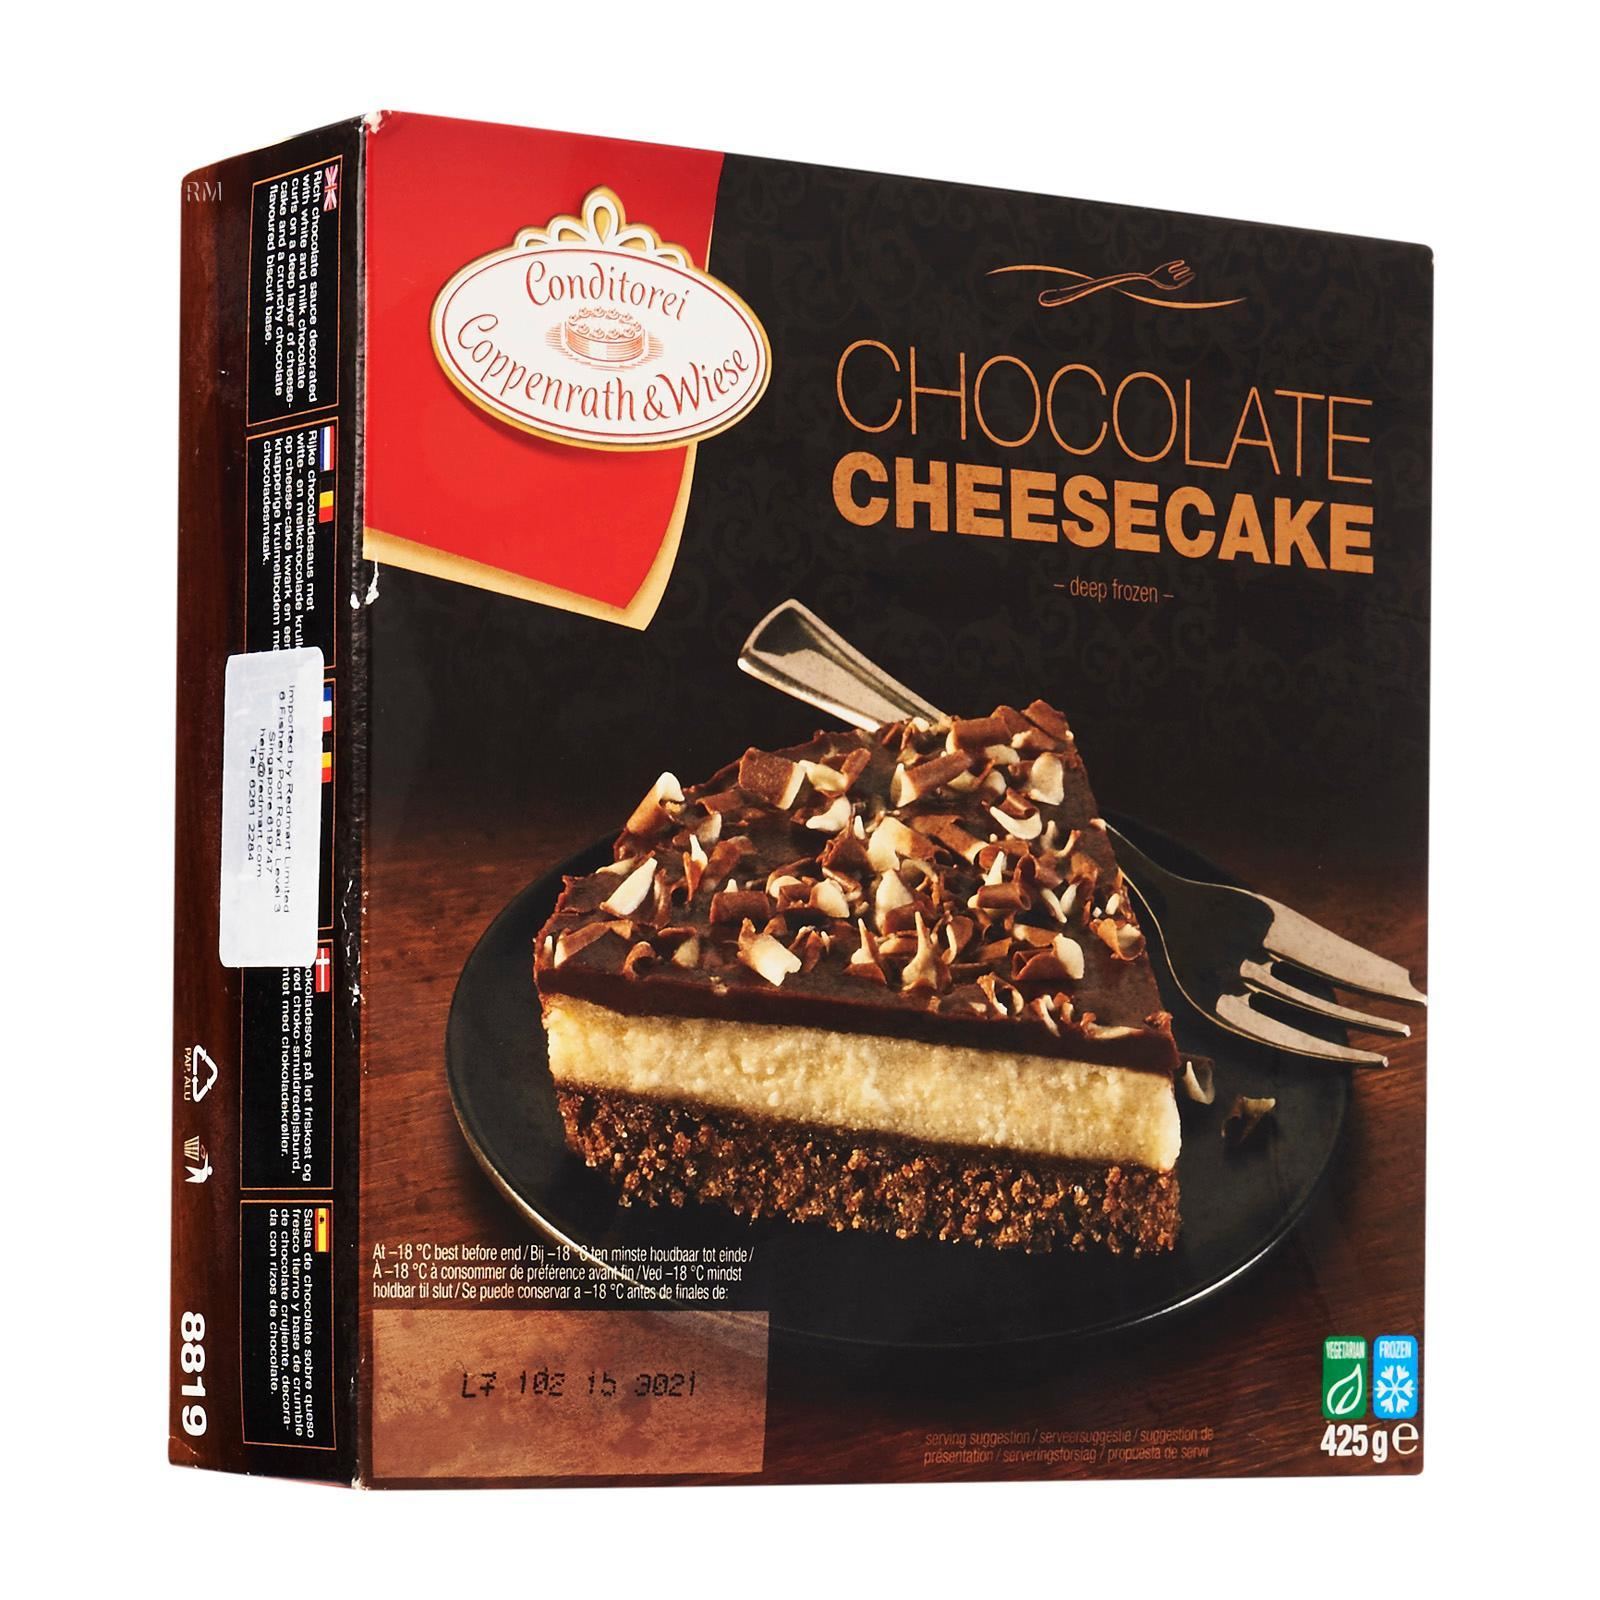 Conditorei Coppenrath & Wiese Chocolate Cheesecake - Frozen